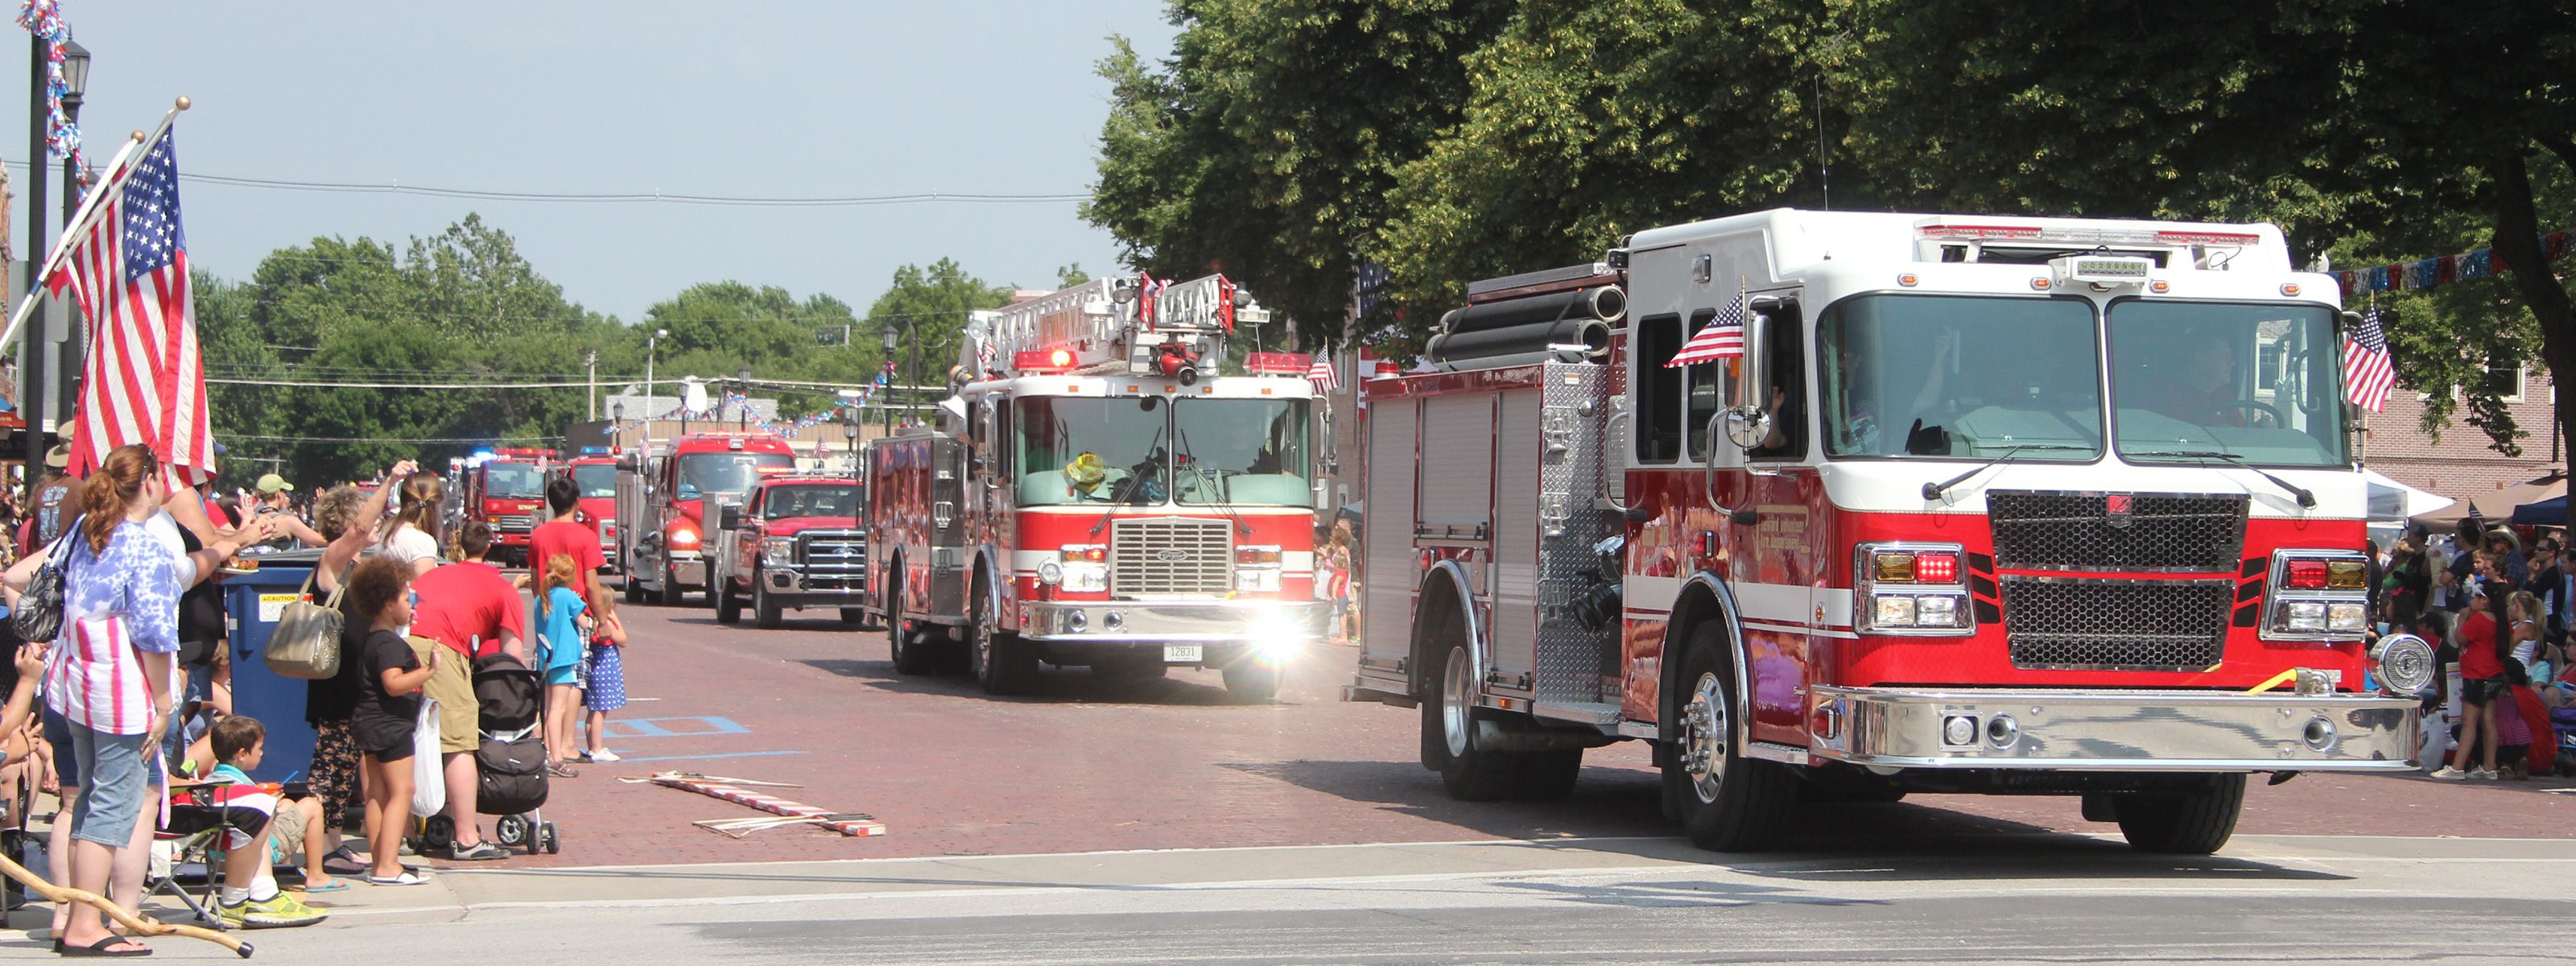 Fire trucks in the July 4th grand parade in Seward, Nebraska